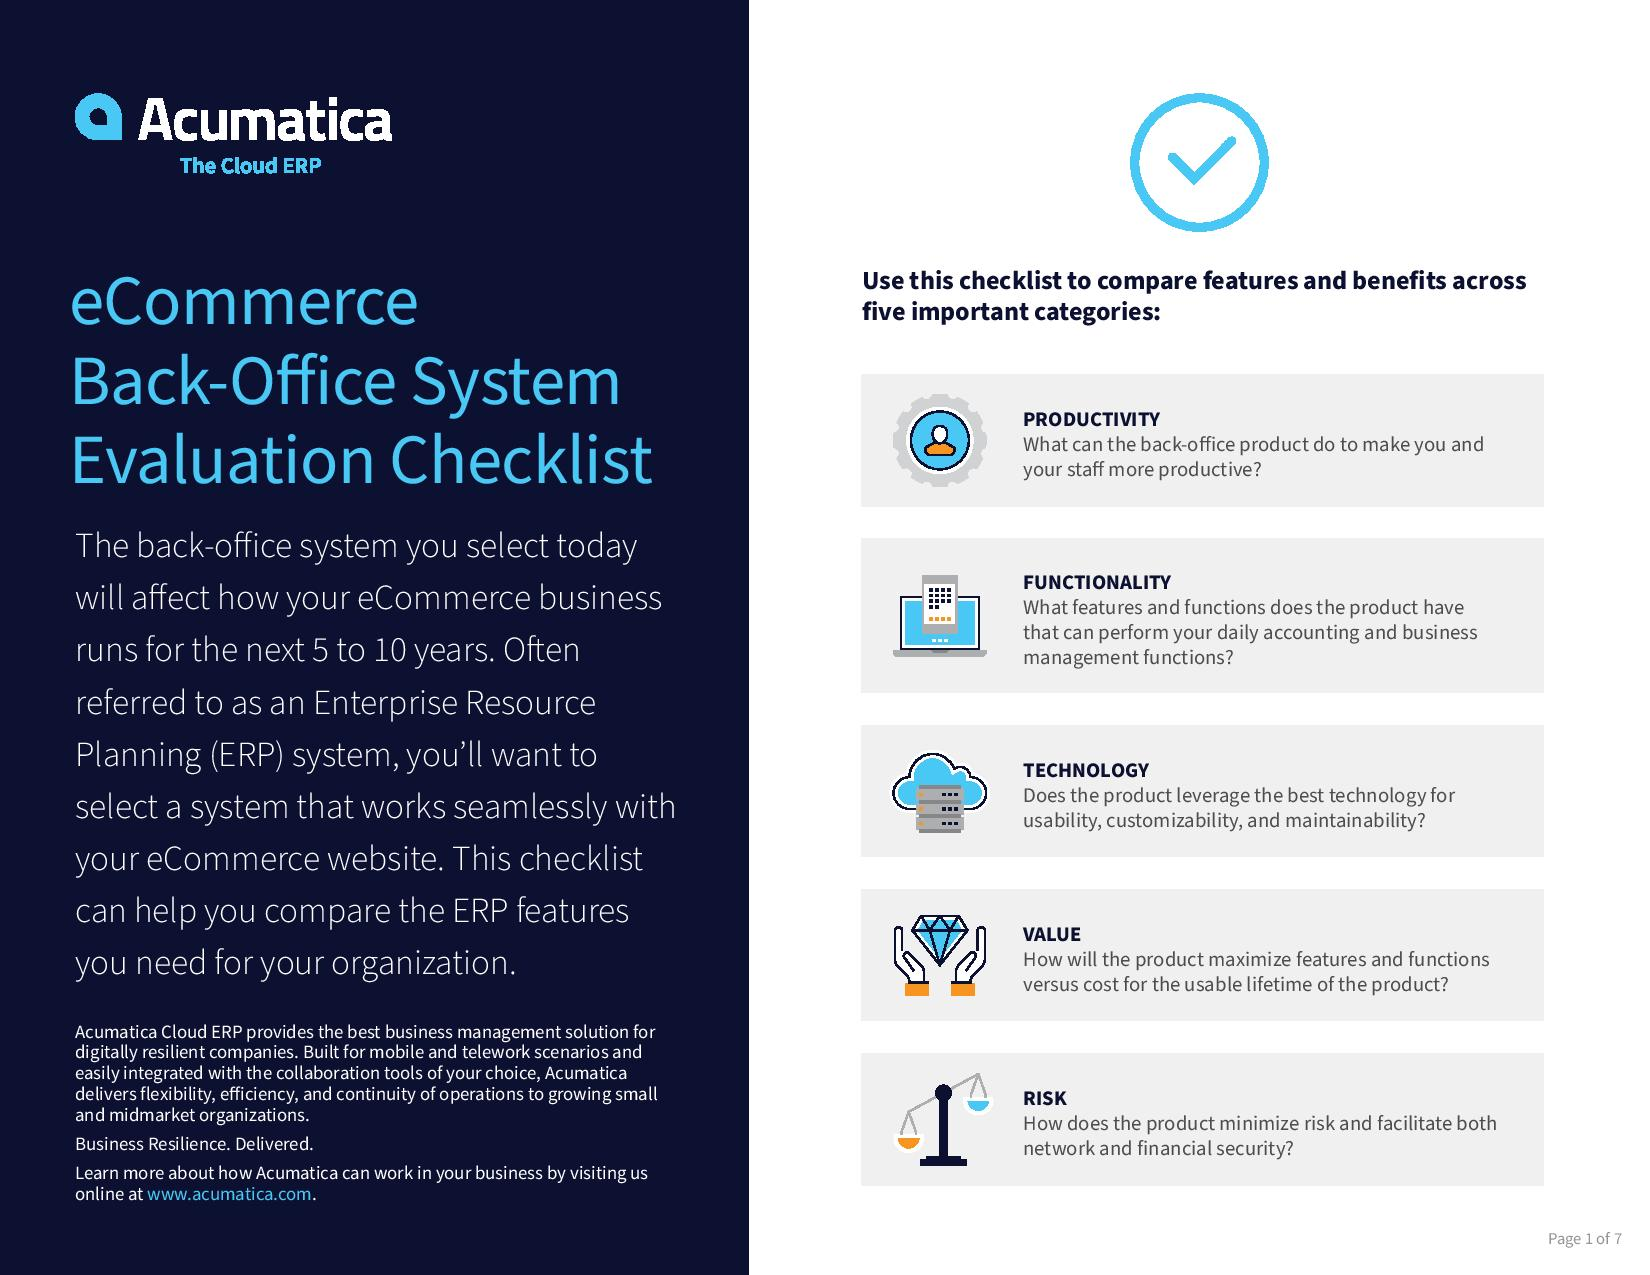 Select the right back-office system for your eCommerce business., page 0